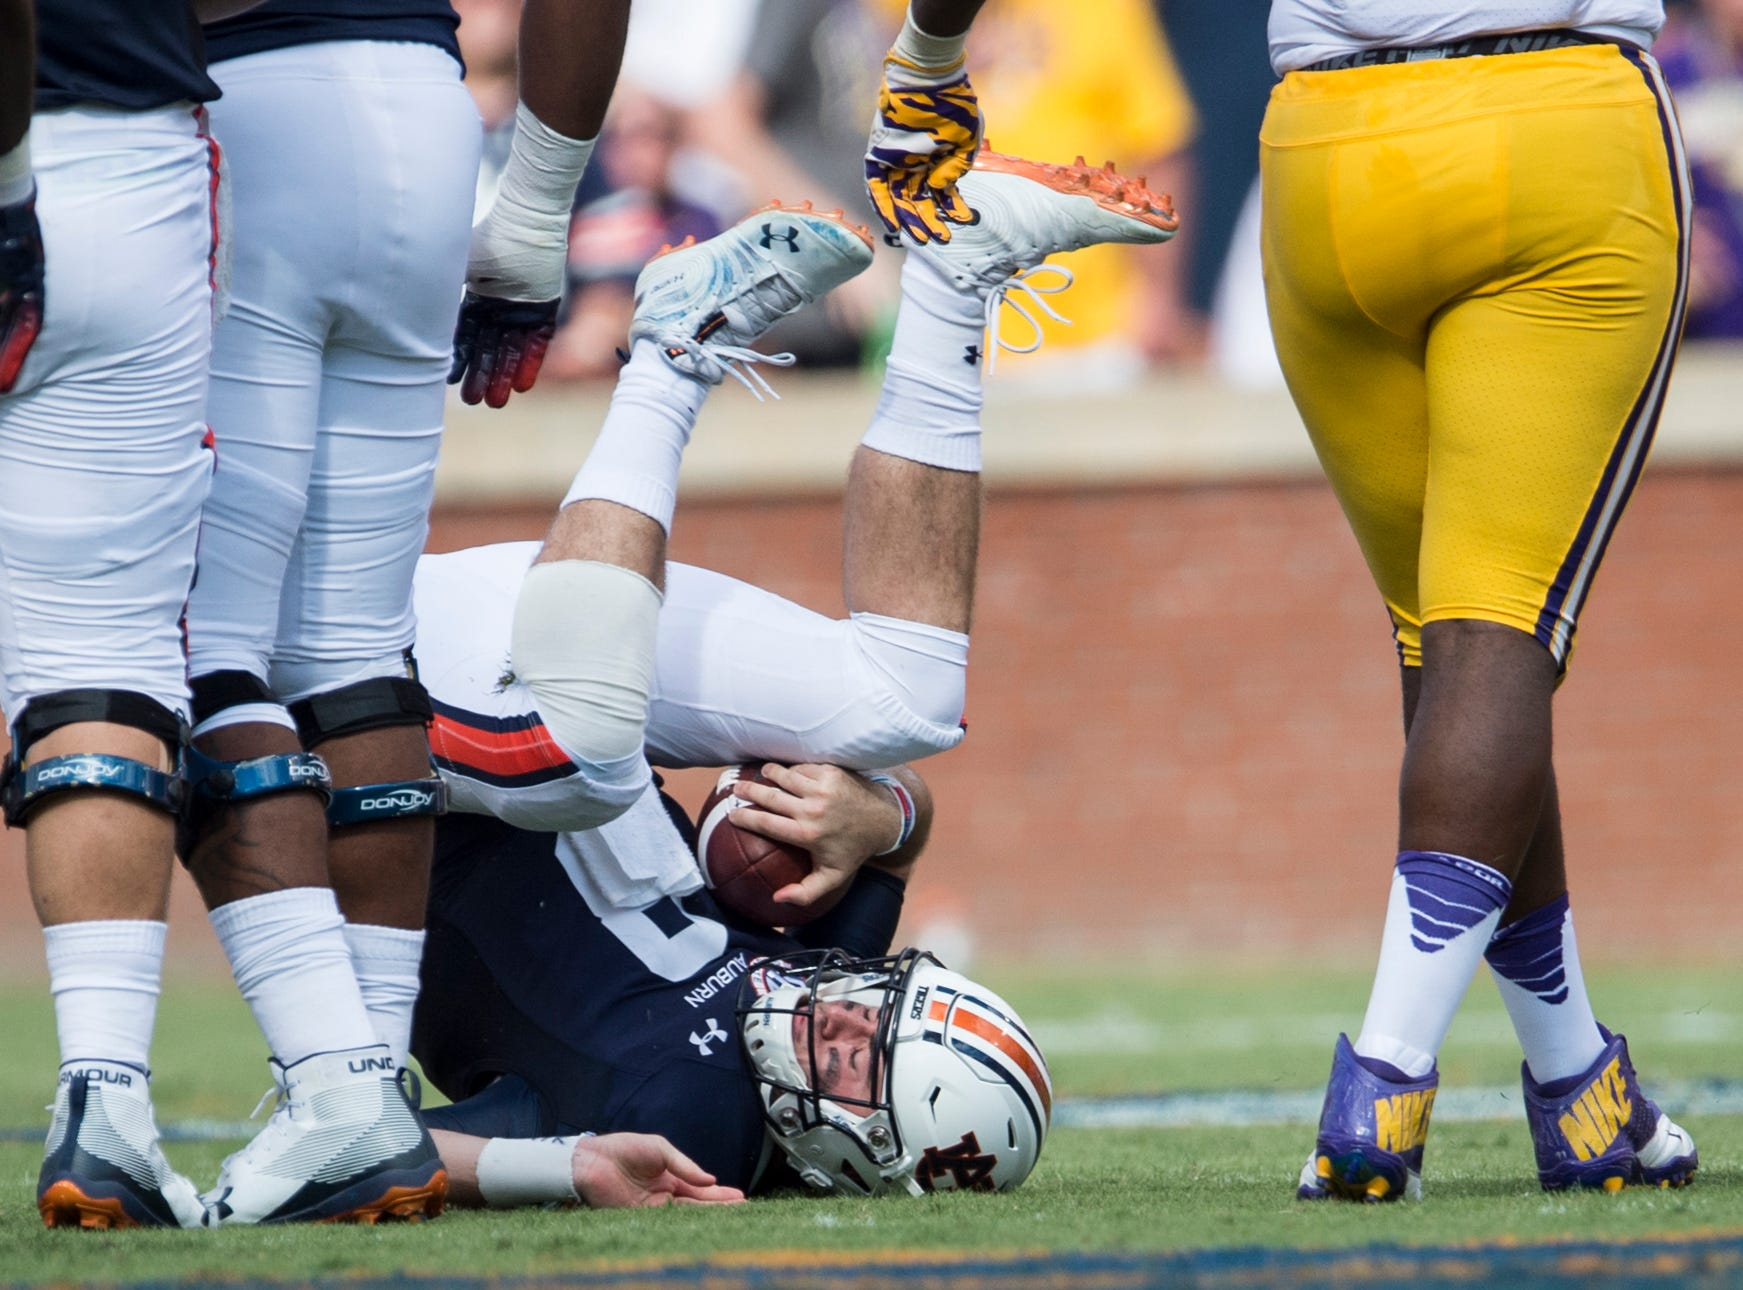 Auburn's Jarrett Stidham (8) rolls on his back after being sacked by LSU at Jordan-Hare Stadium in Auburn, Ala., on Saturday, Sept. 15, 2018. LSU defeated Auburn 22-21.